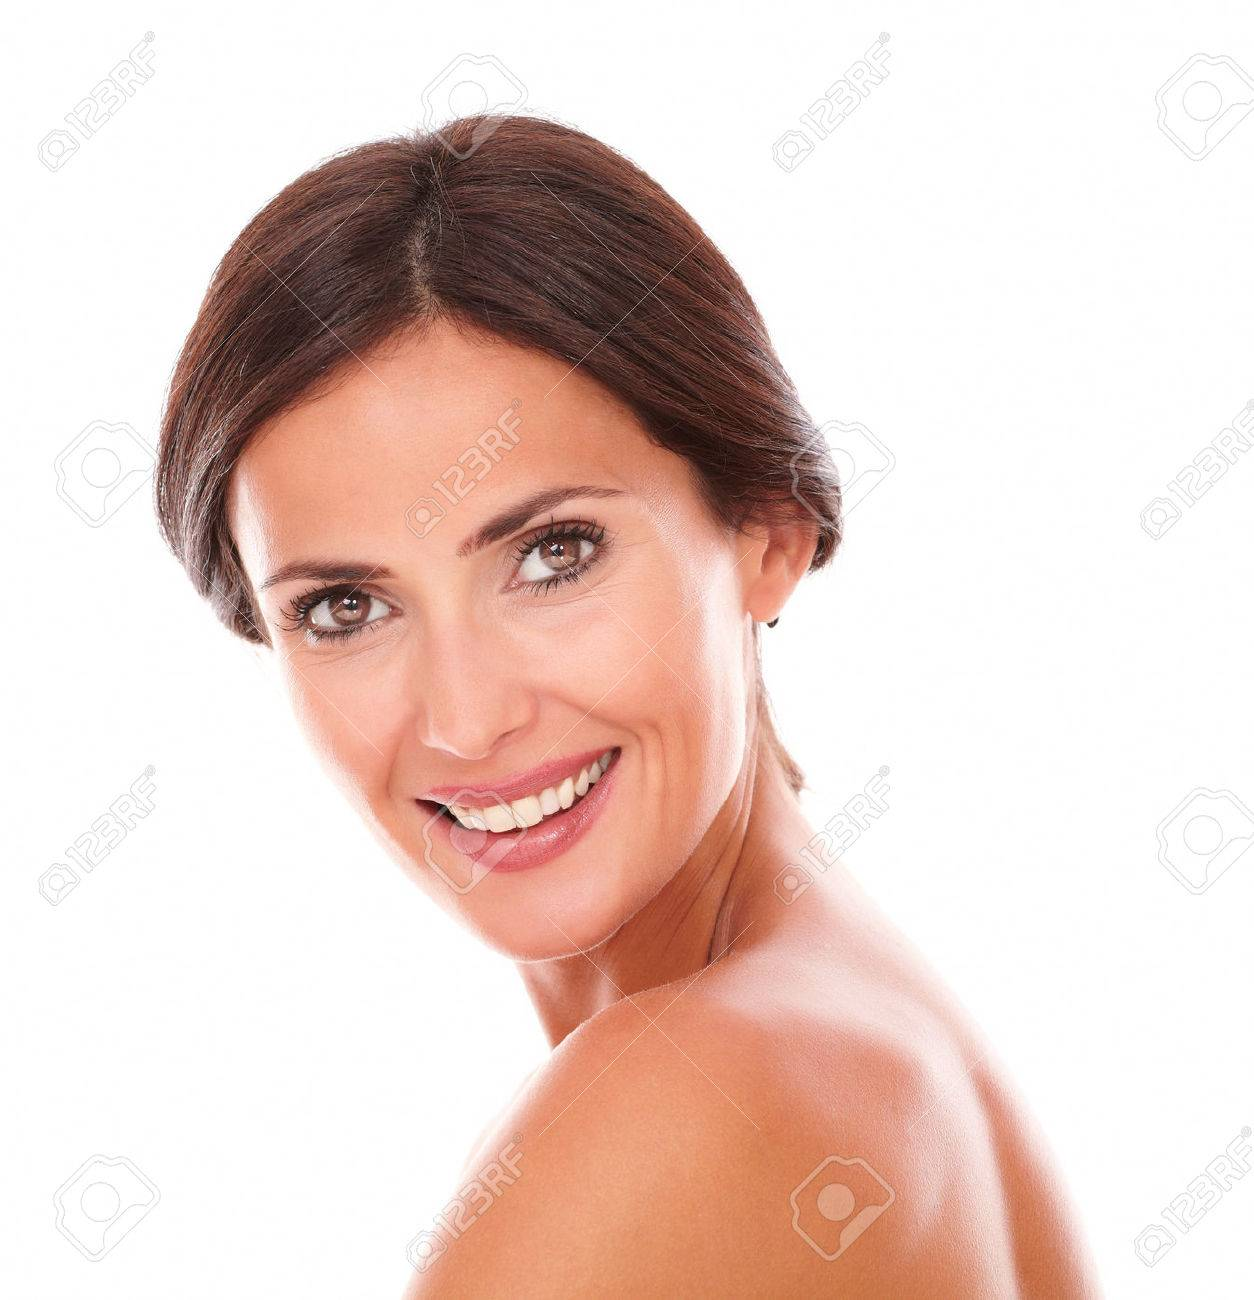 mature women sexy stock photos. royalty free mature women sexy images